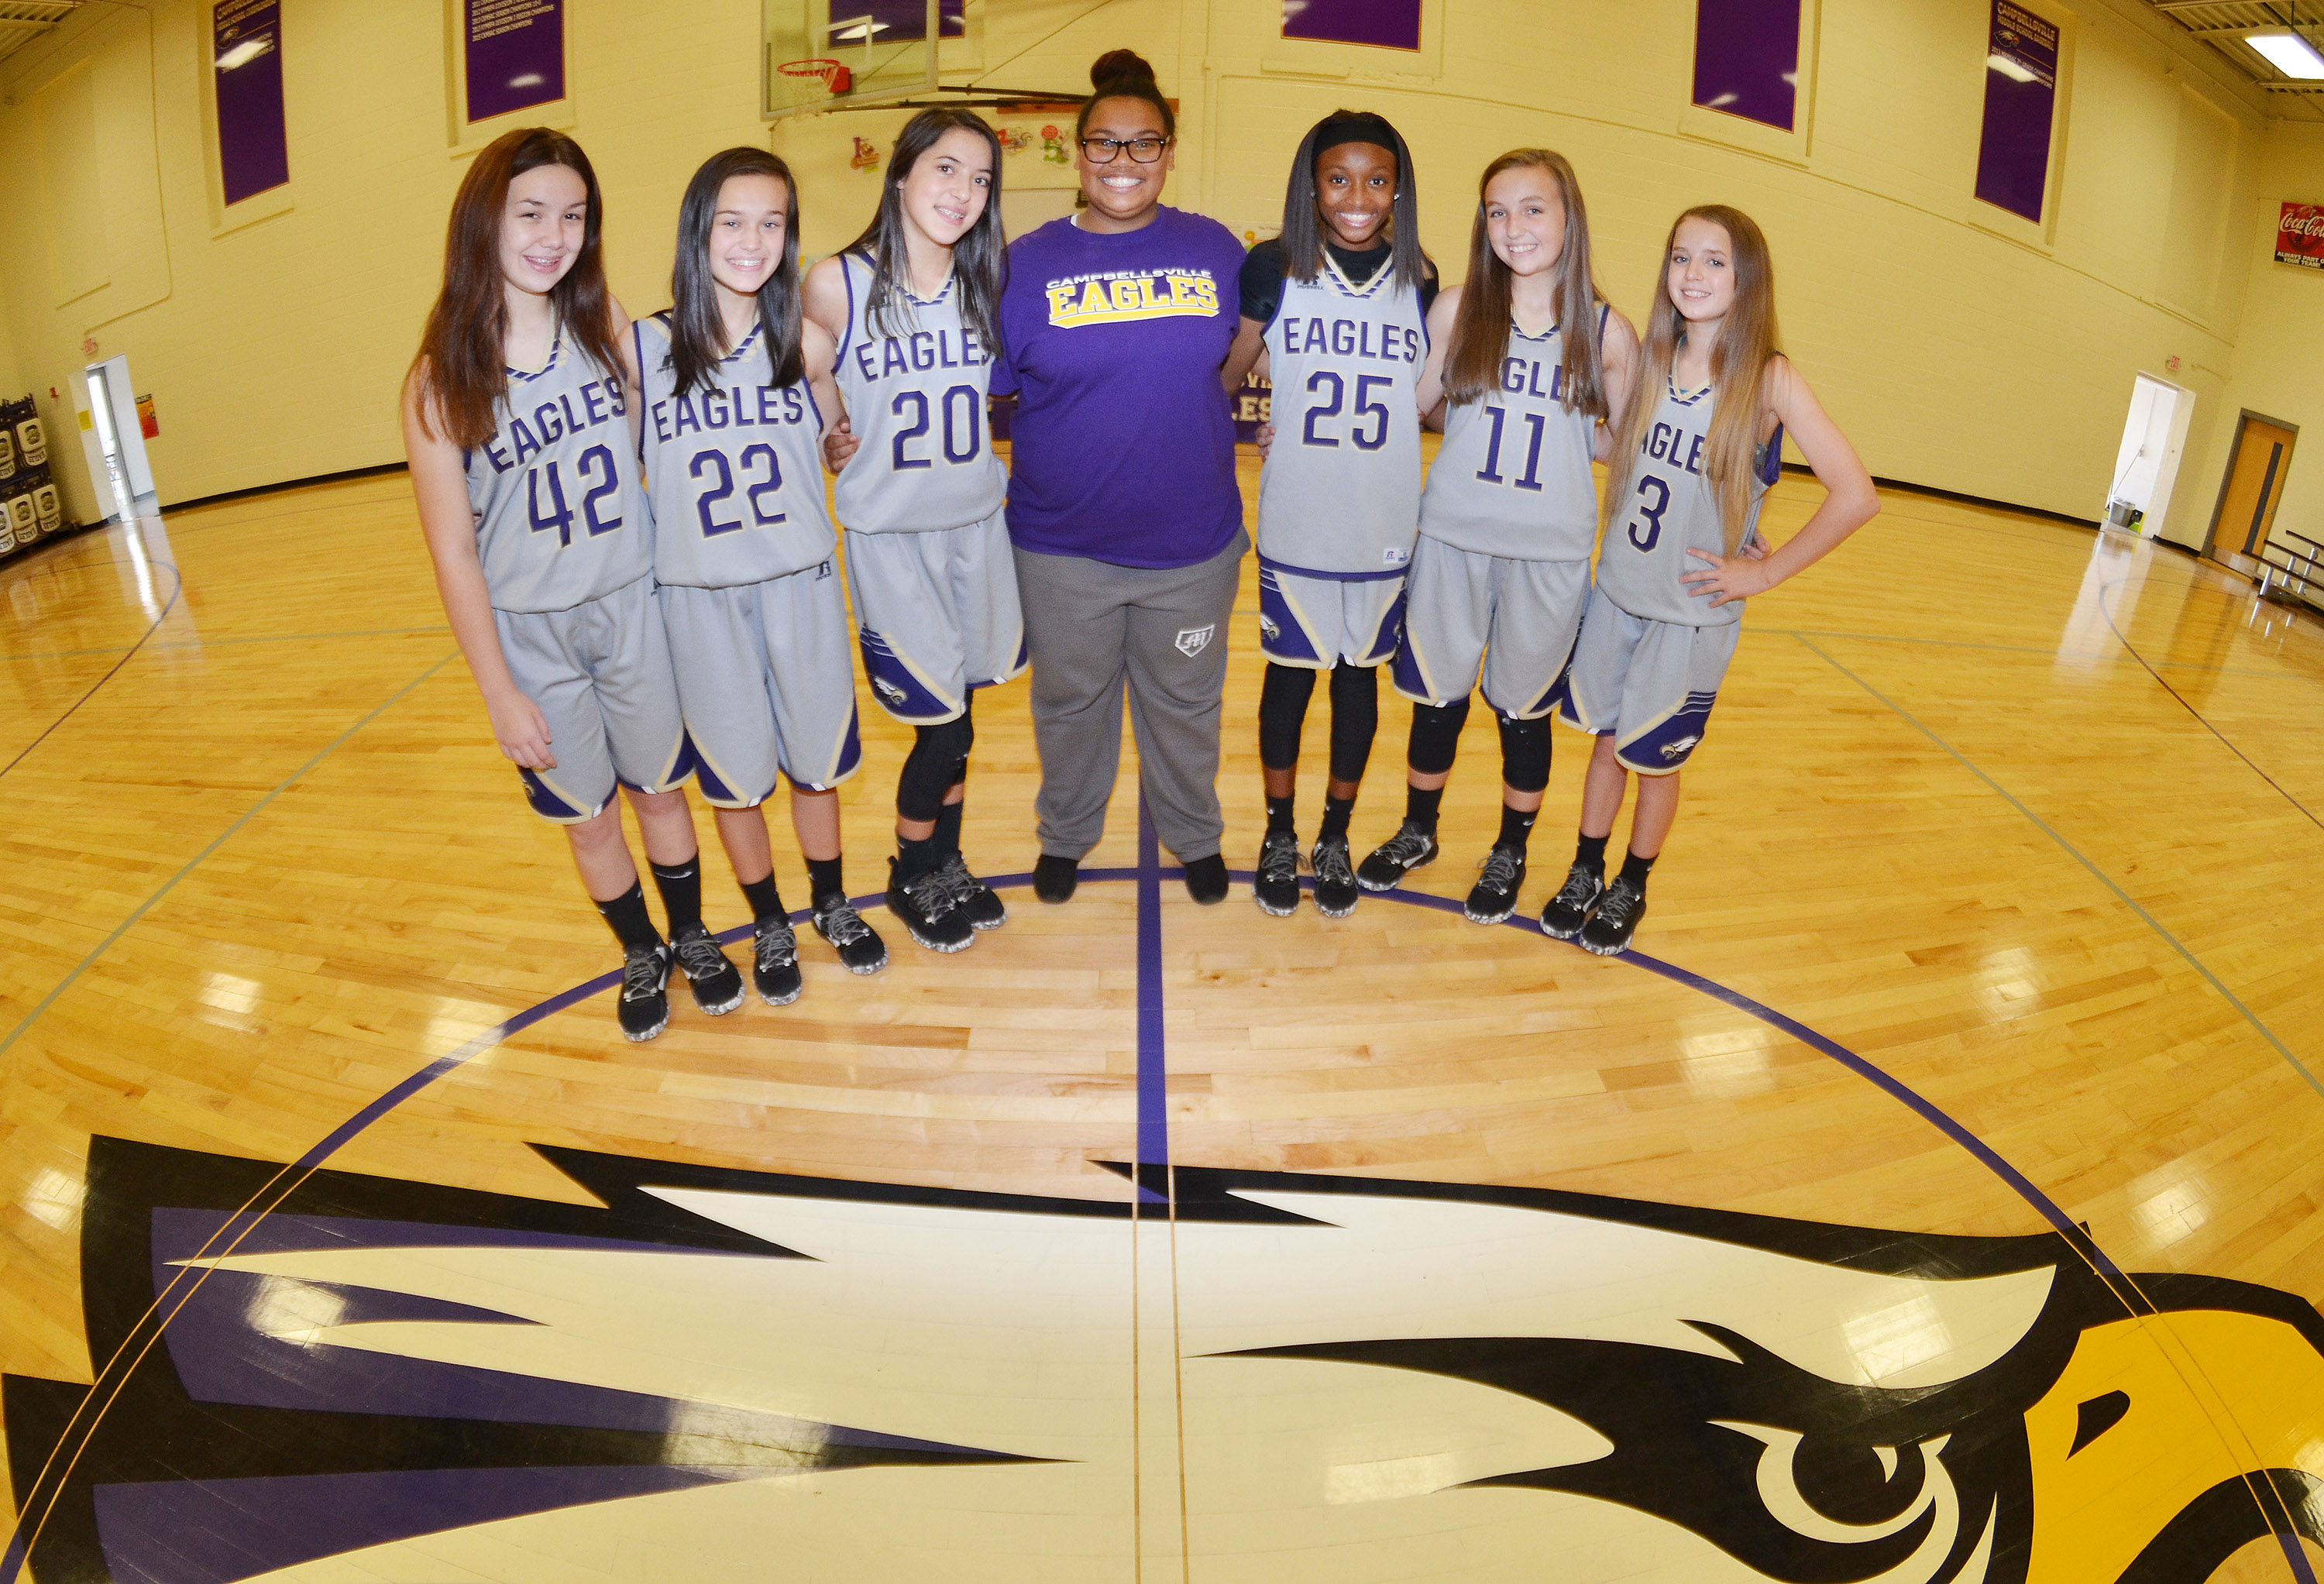 CMS girls' basketball eighth-grade players will be honored on Thursday, Oct. 12, at about 7:30 p.m. in the Campbellsville Elementary School gym. They are, from left, Olivia Fields, Tayler Thompson, Kaylyn Smith, Brae Washington, Bri Gowdy, Lainey Watson and Rylee Petett.